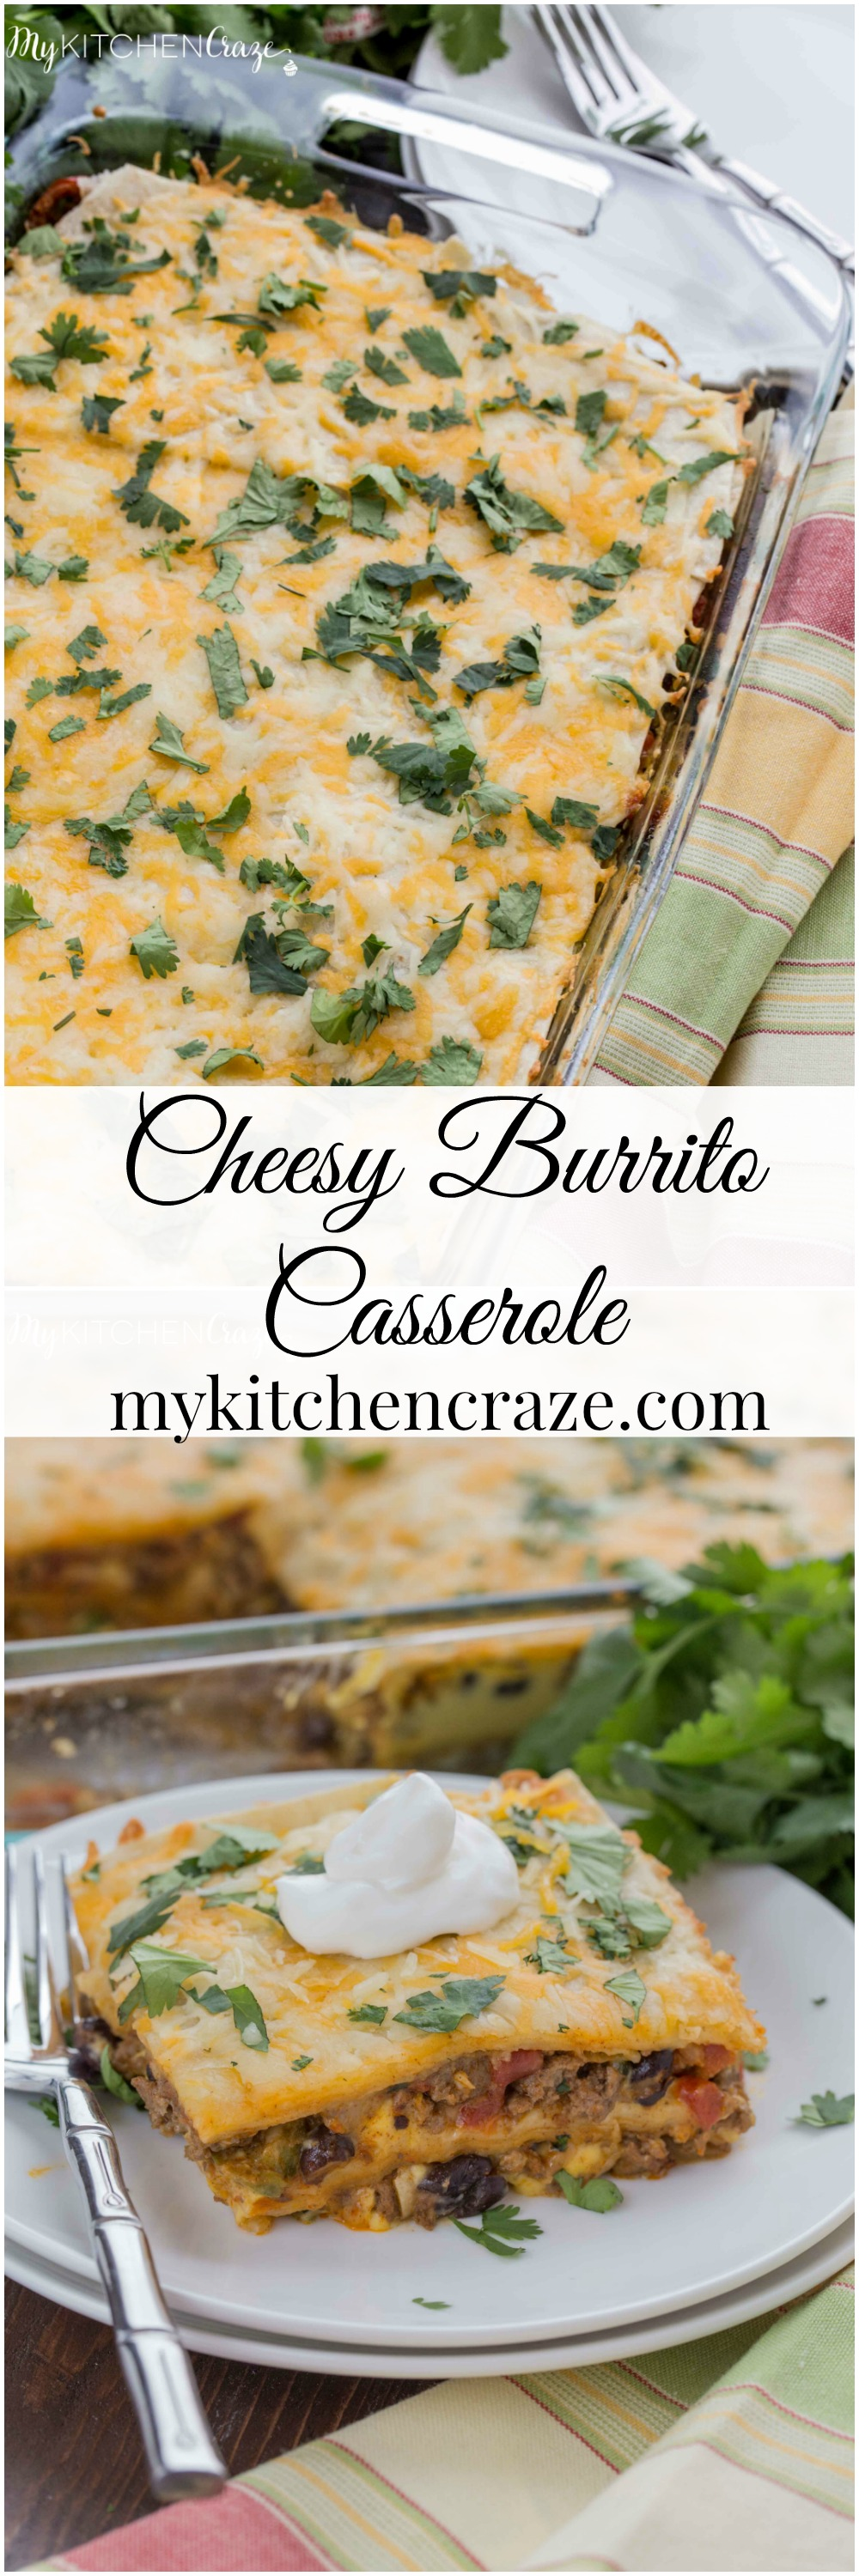 Cheesy Burrito Casserole ~ mykitchencraze.com ~ Enjoy this 30 minute meal on those busy nights. Loaded with all sorts of veggies, ground beef and a delicious sauce. You won't have any leftovers!